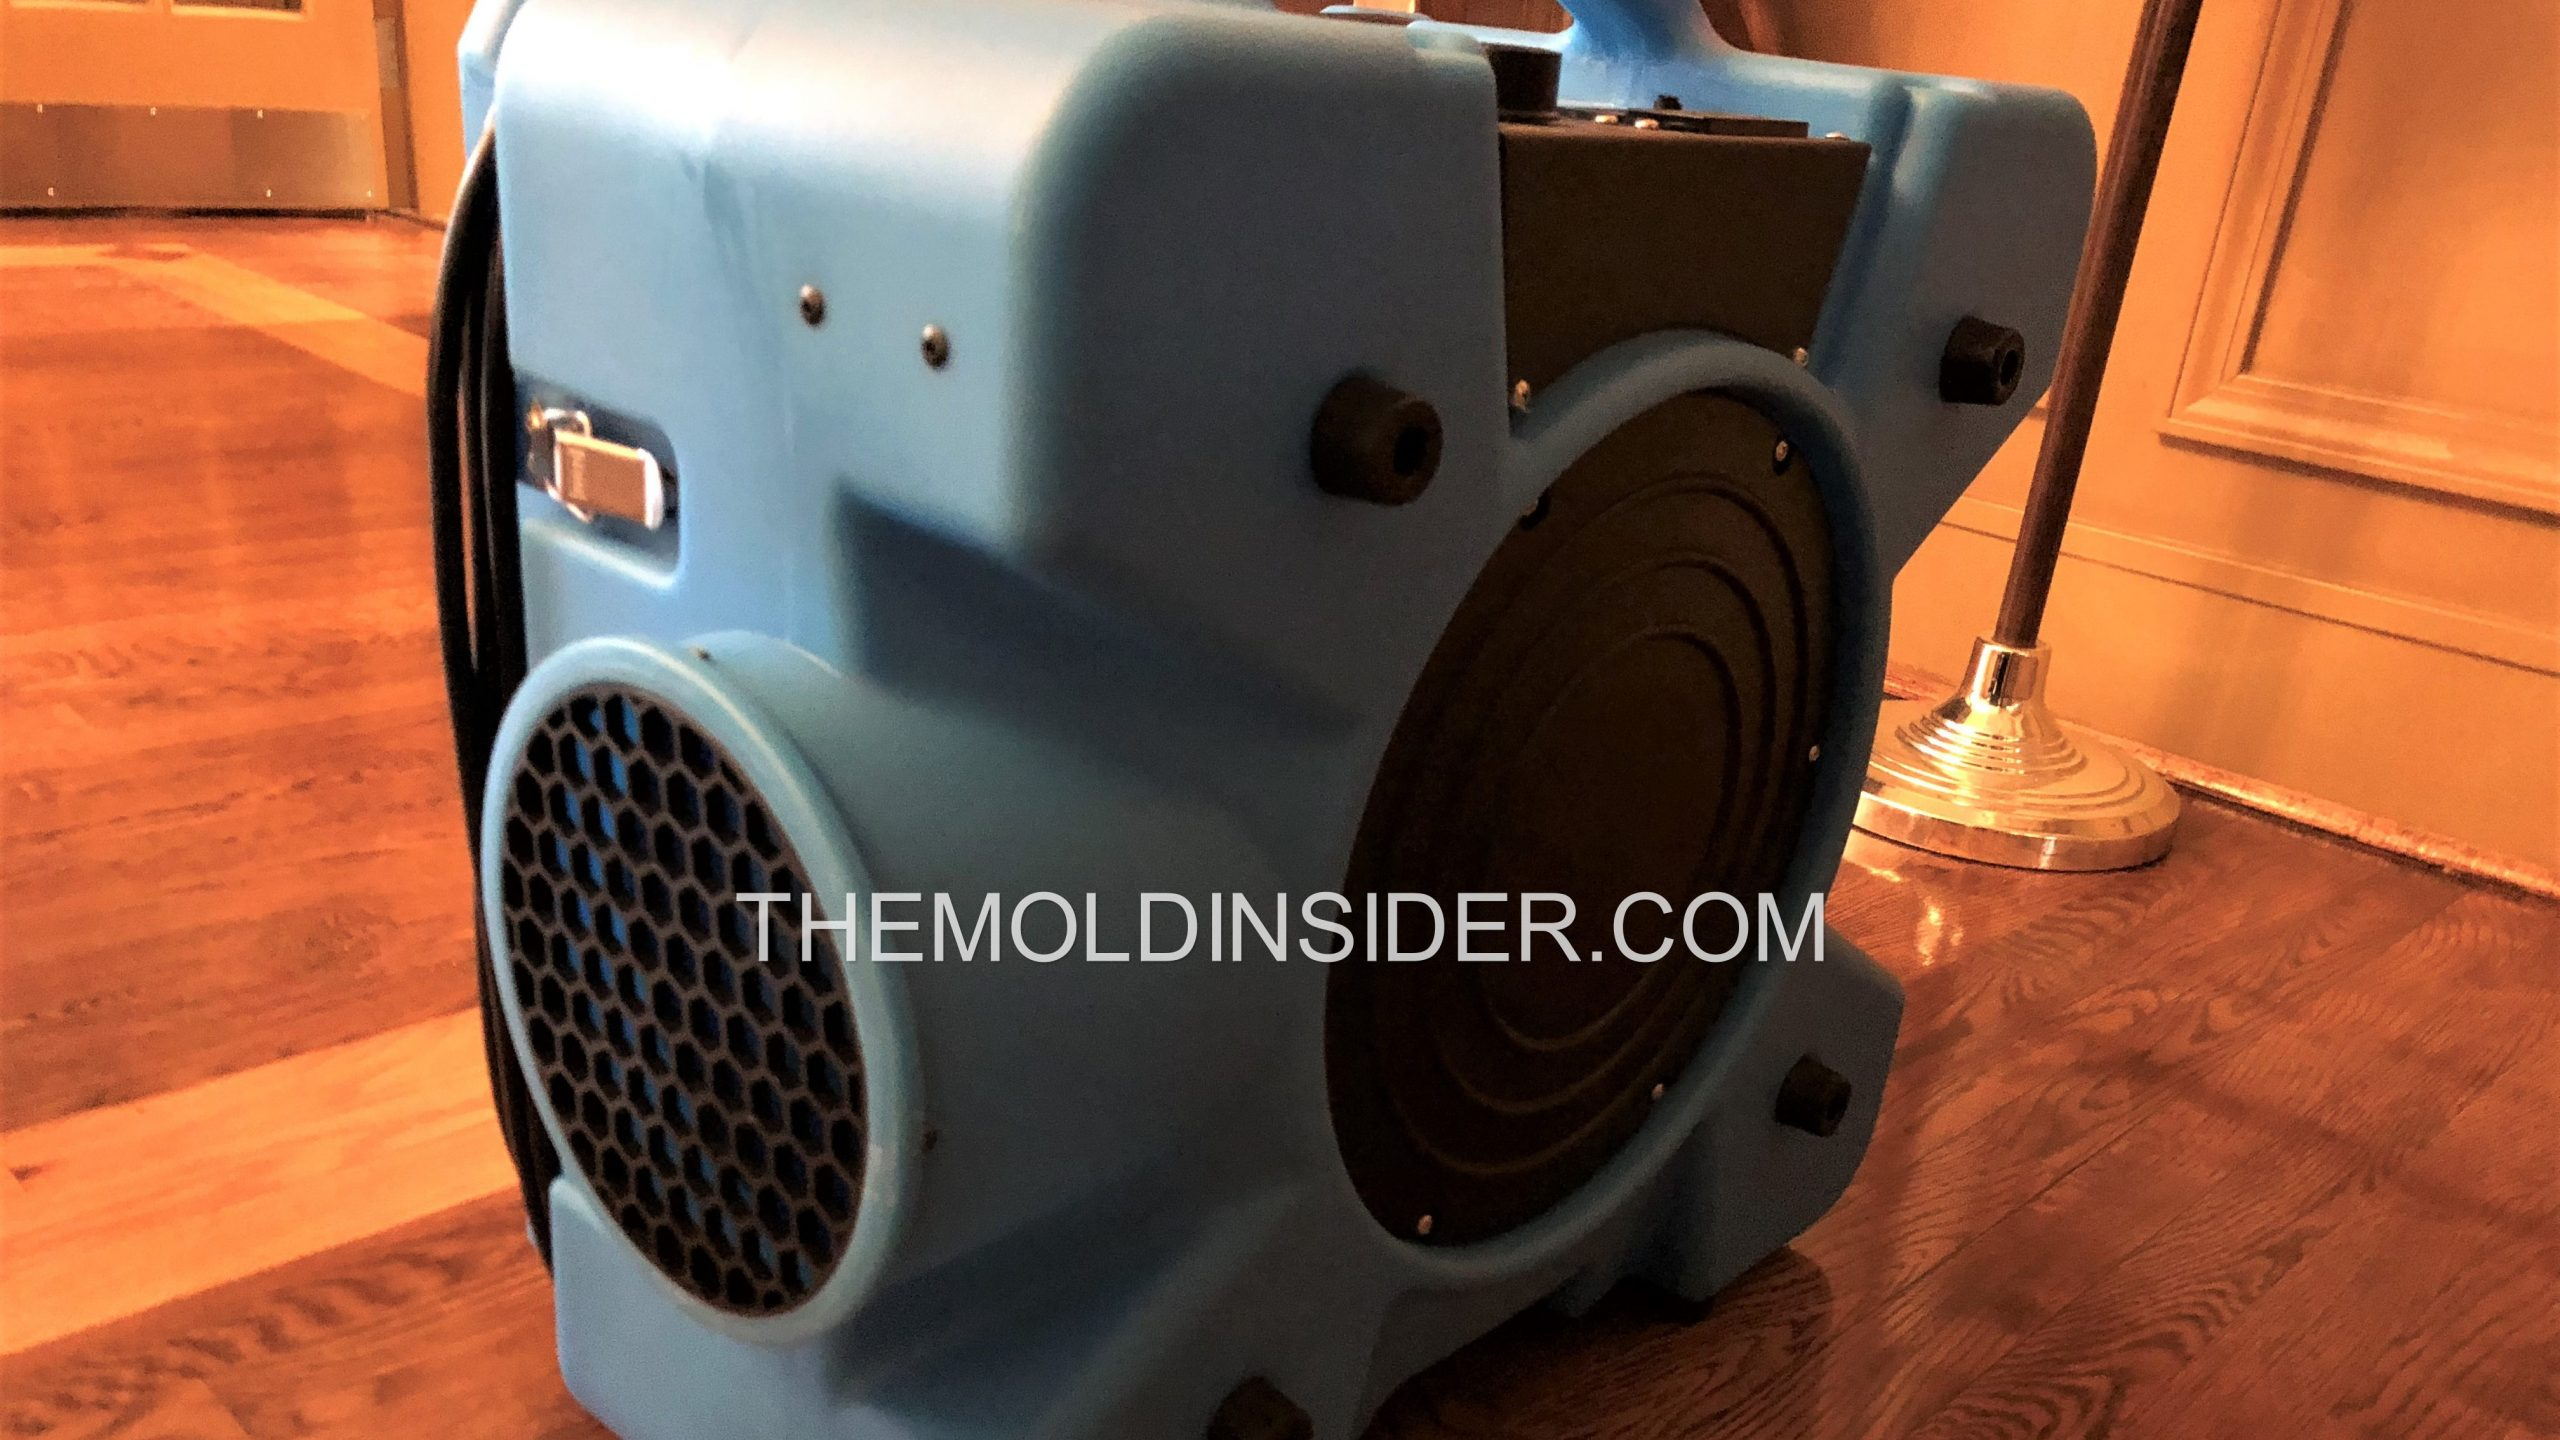 What I Like About The Air Scrubber DefendAir HEPA 500